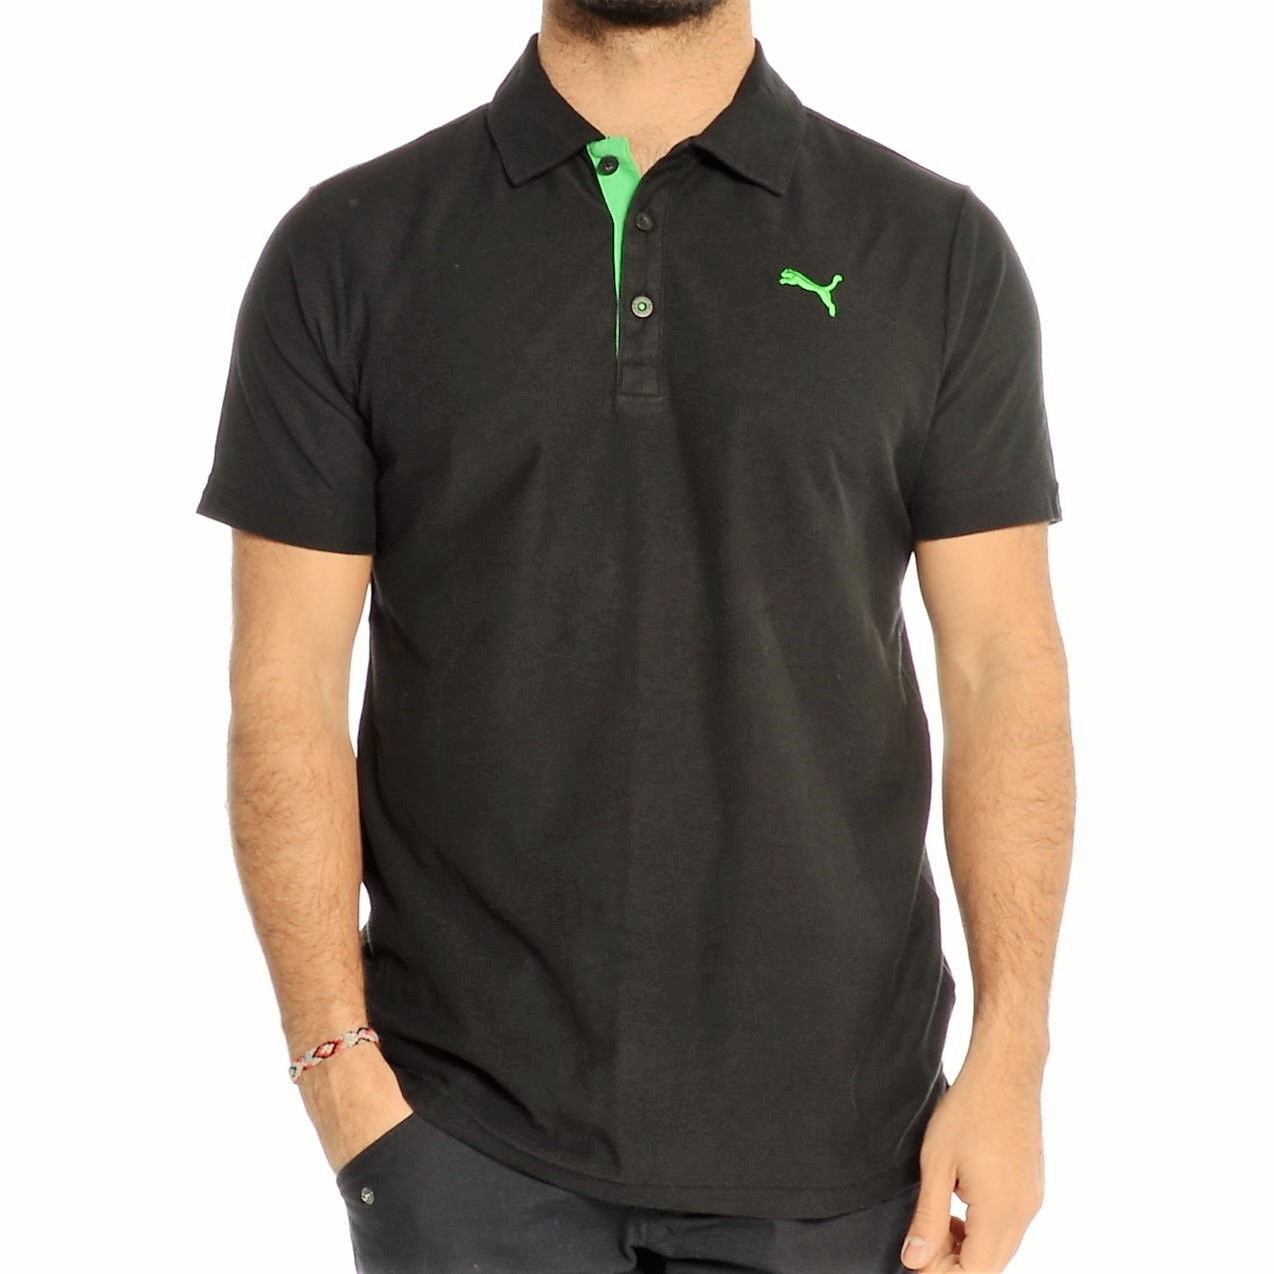 768b560aa57 Puma Short Sleeve Jersey Contrast Polo In Black